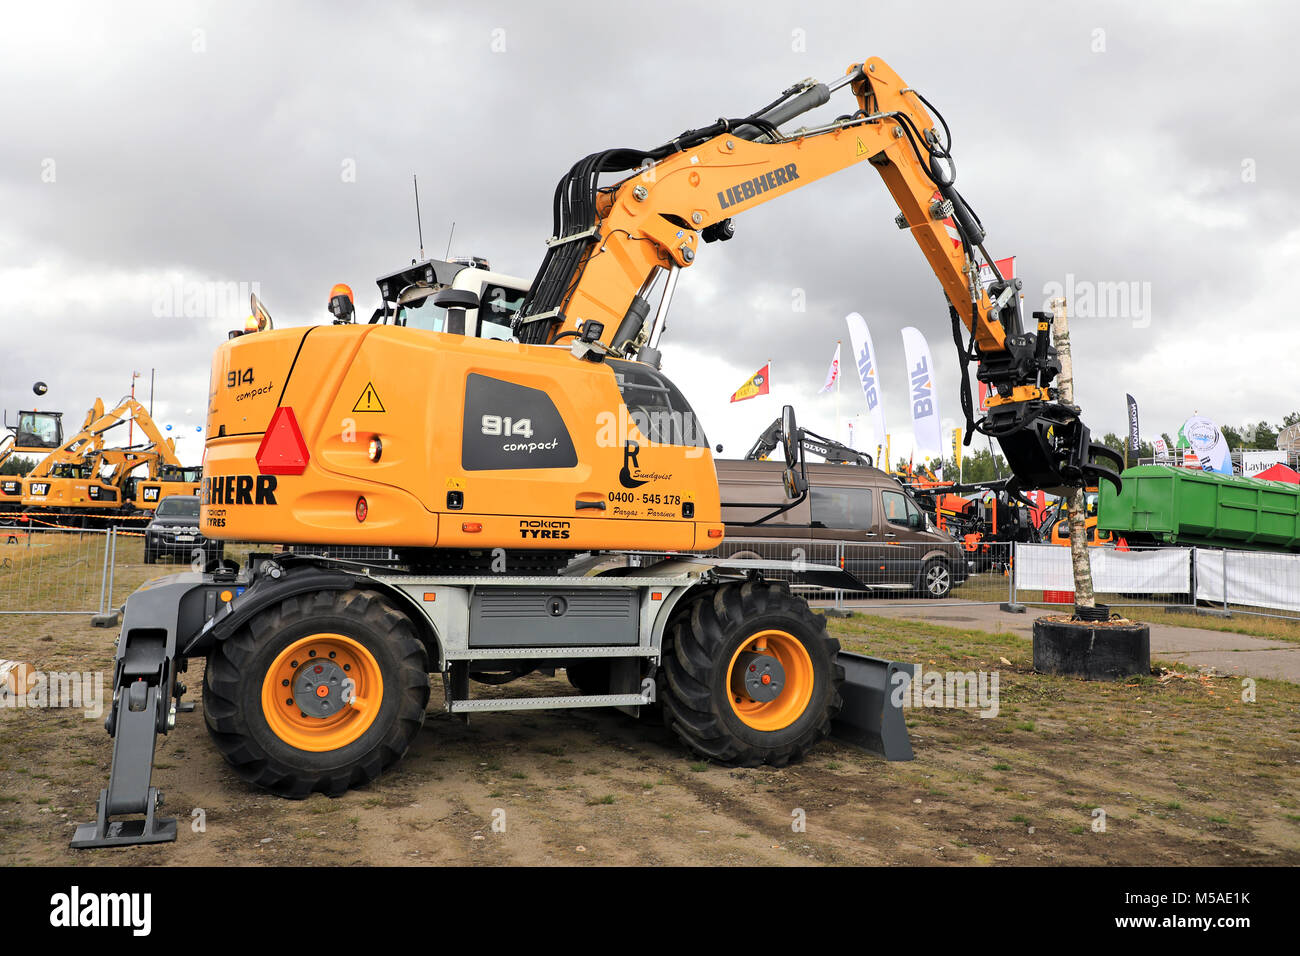 HYVINKAA, FINLAND - SEPTEMBER 8, 2017: Liebherr A 914 Compact Litronic wheeled excavator demostrates handling a - Stock Image